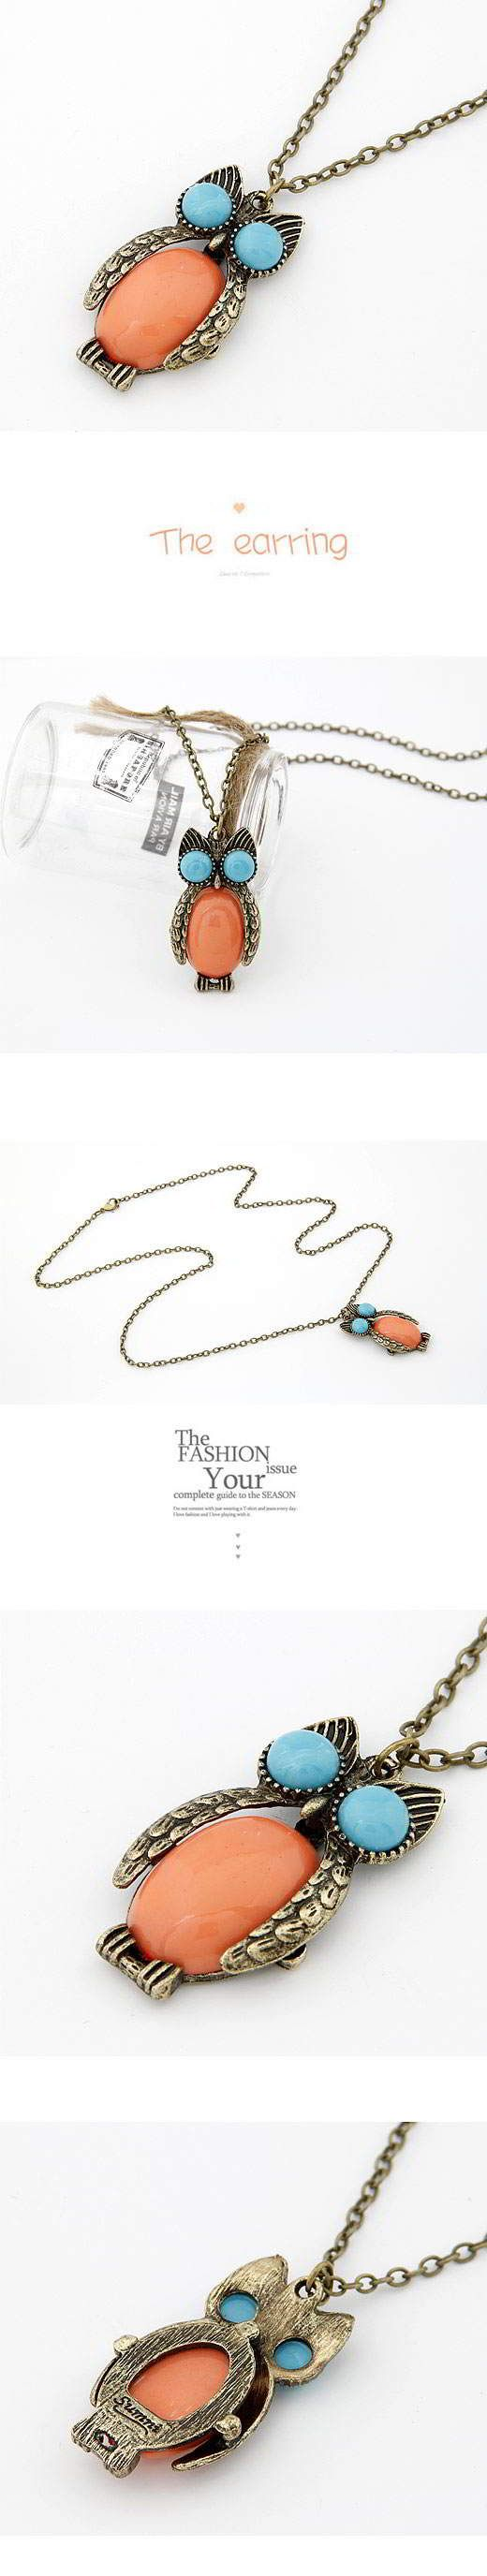 Korean Vintage Exquisite Fashion Lovely OWL Charm Design Sweater Chain General. Small and catchy. REPIN if you like it. Only 22.5 IDR